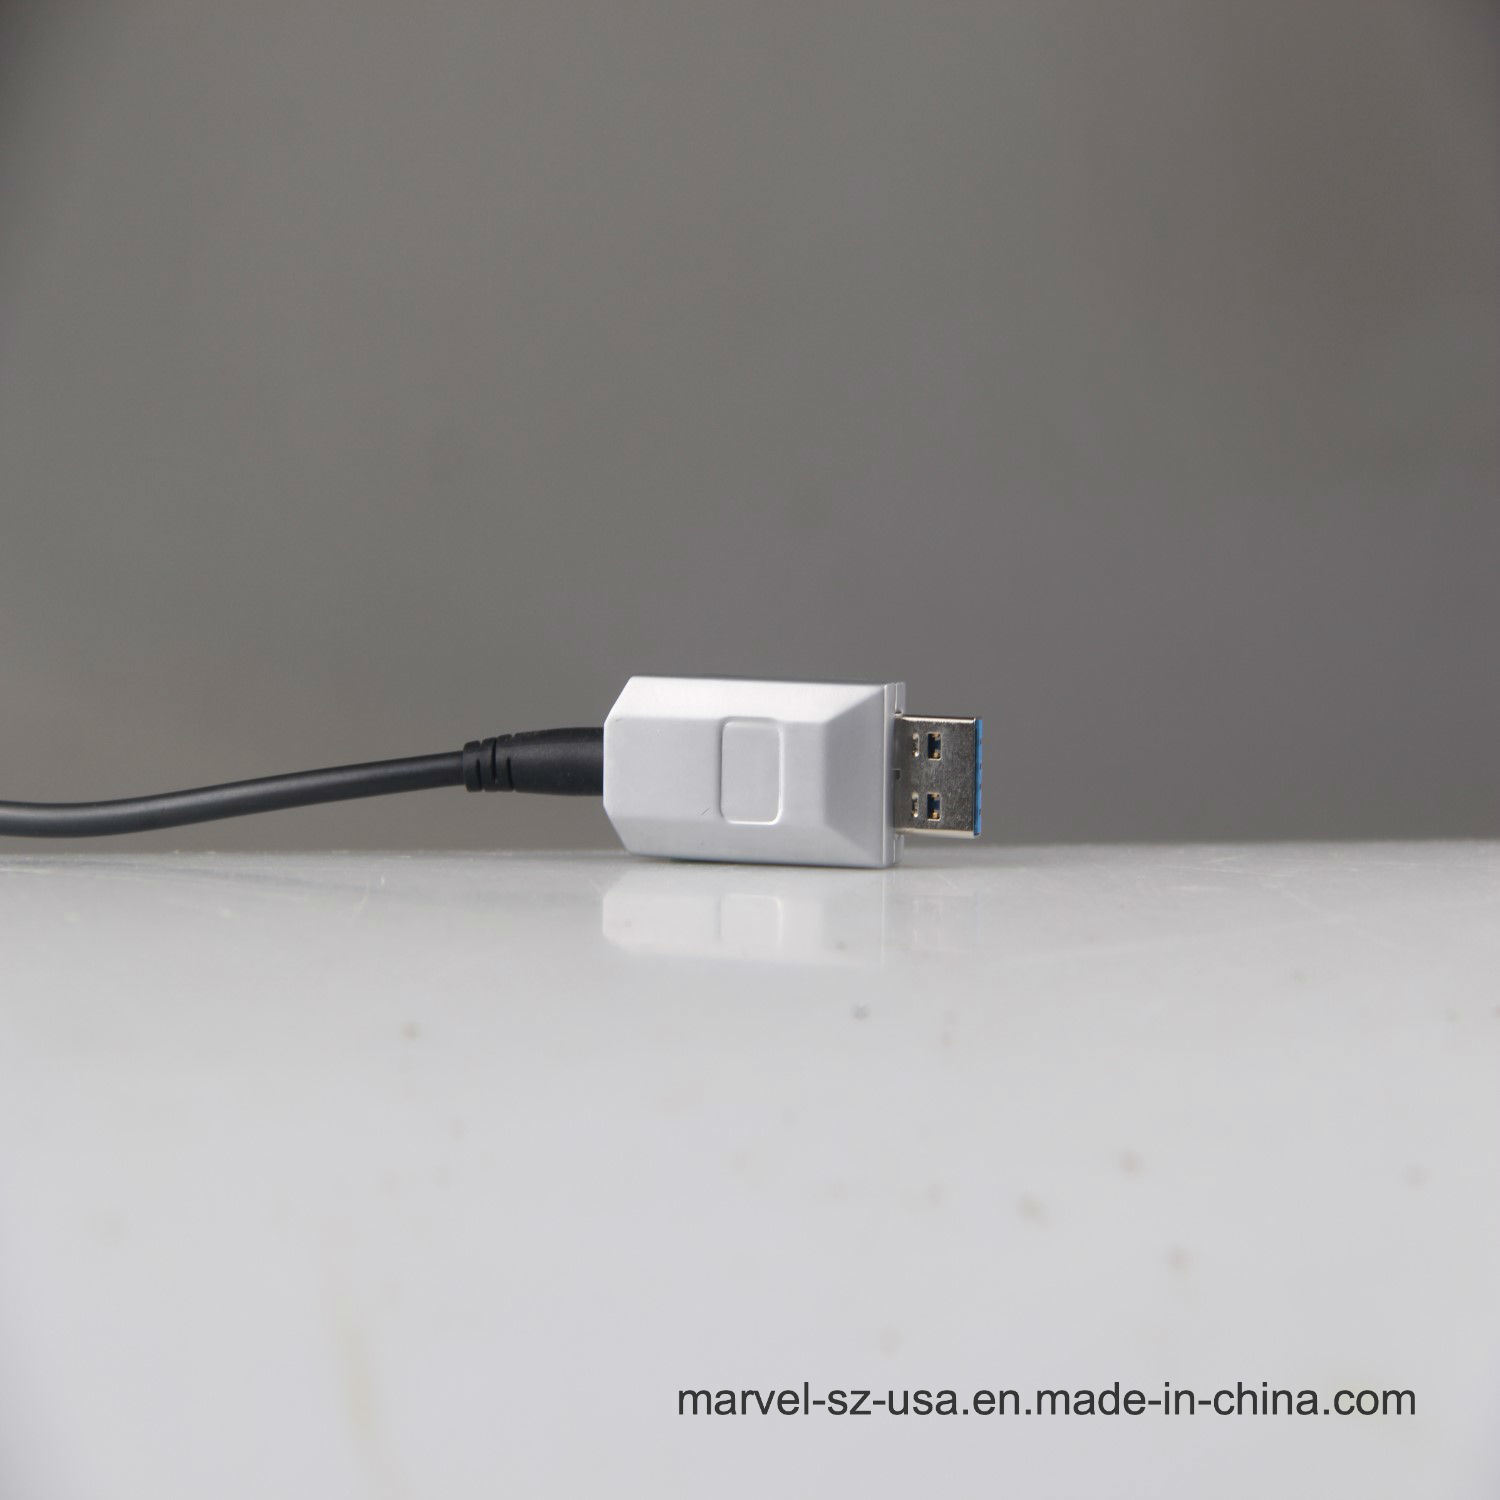 China up to 50m, 5gbps, USB3.0 Hybrid Active Optical Cable with ...